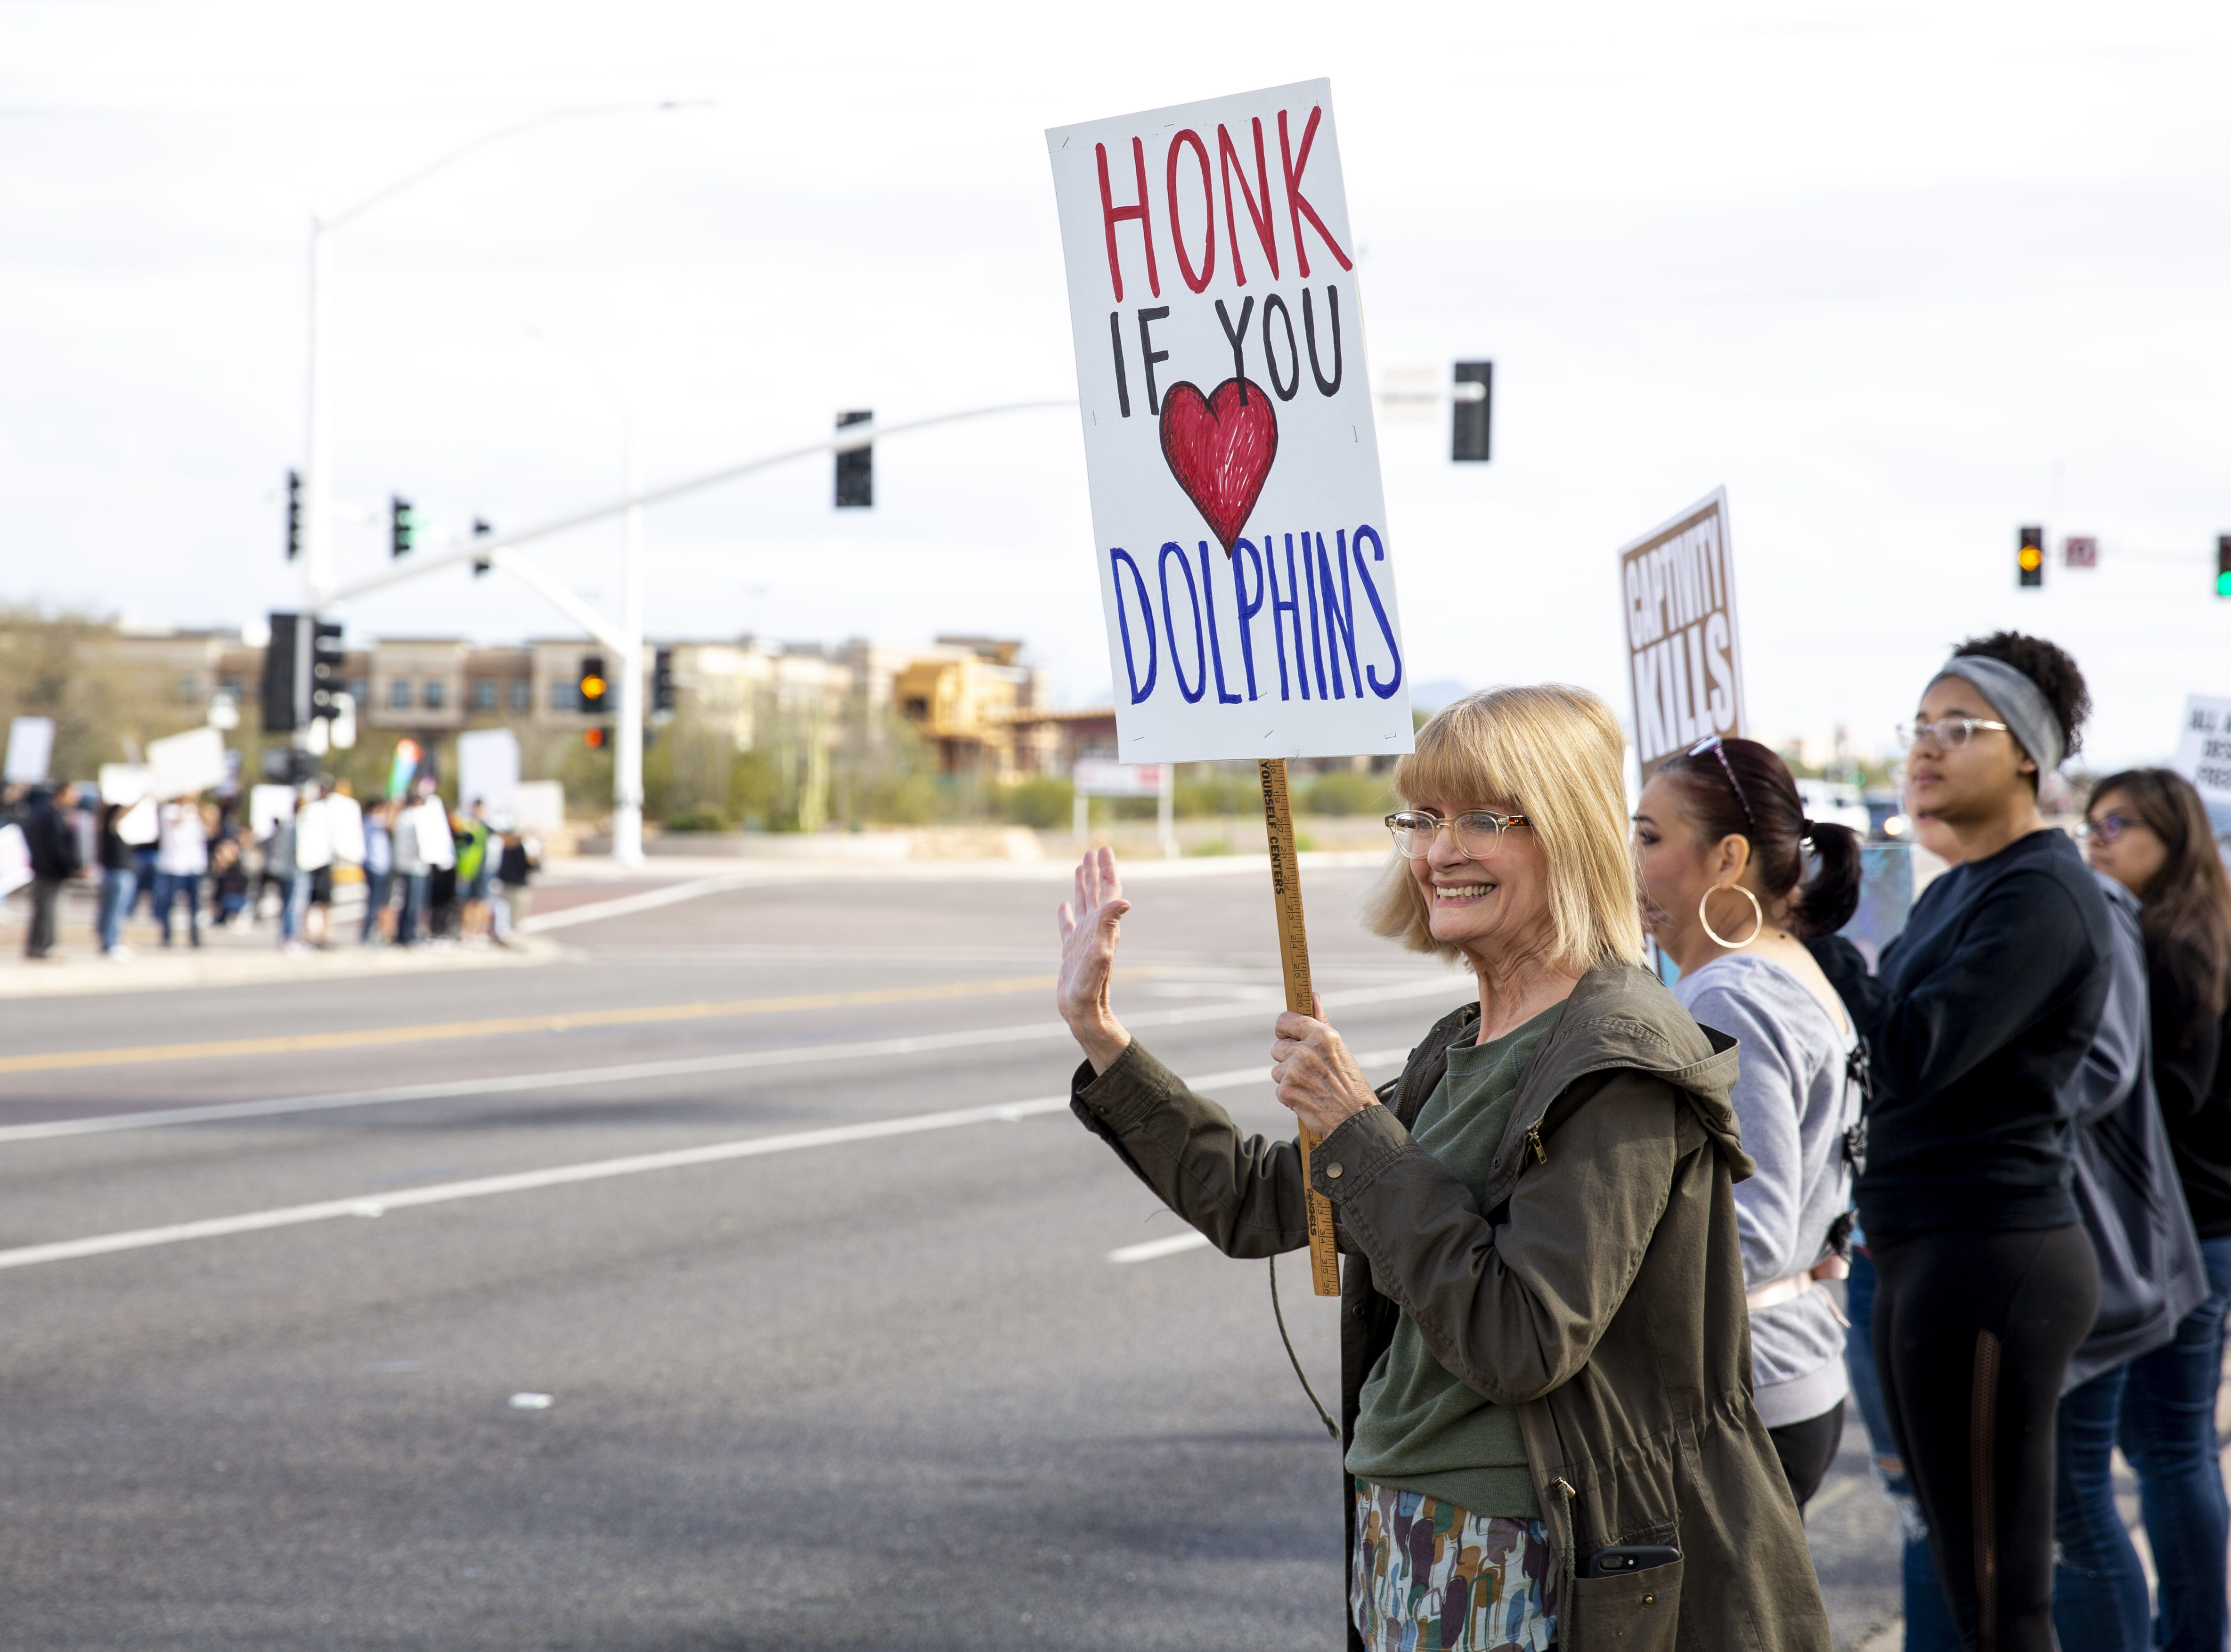 Jeanne Carney waves at passing cars during a protest against Dolphinaris at the intersection of E. Via de Ventura and N. Pima Road in Scottsdale on Feb. 2, 2019. The protest was prompted by four dolphin deaths in less than two years.